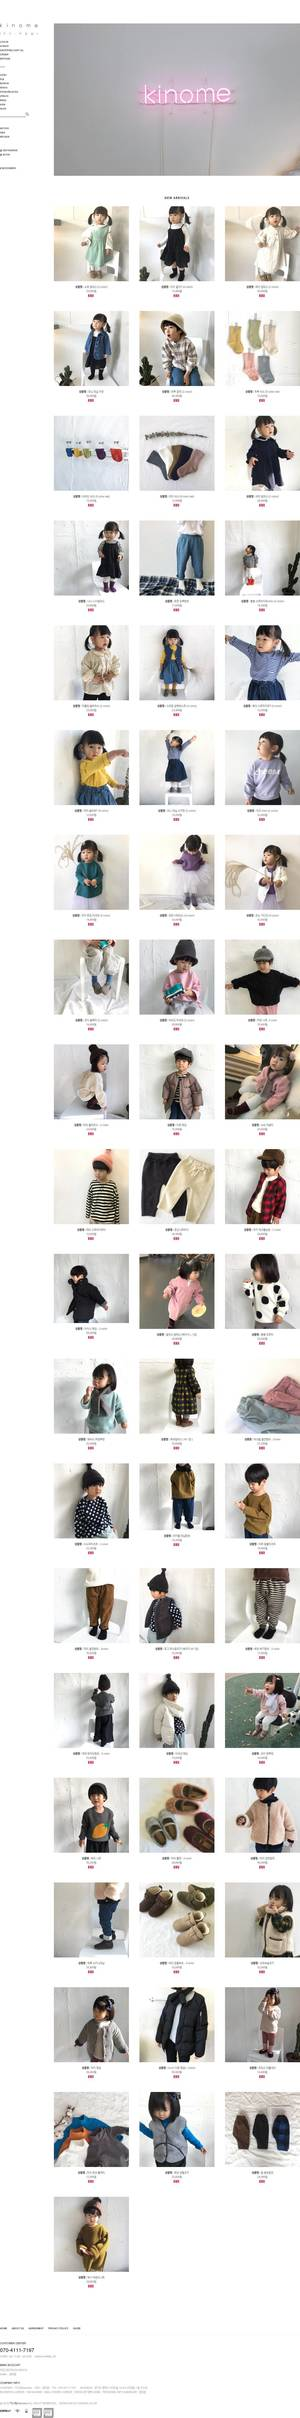 kinome.co.kr 스샷